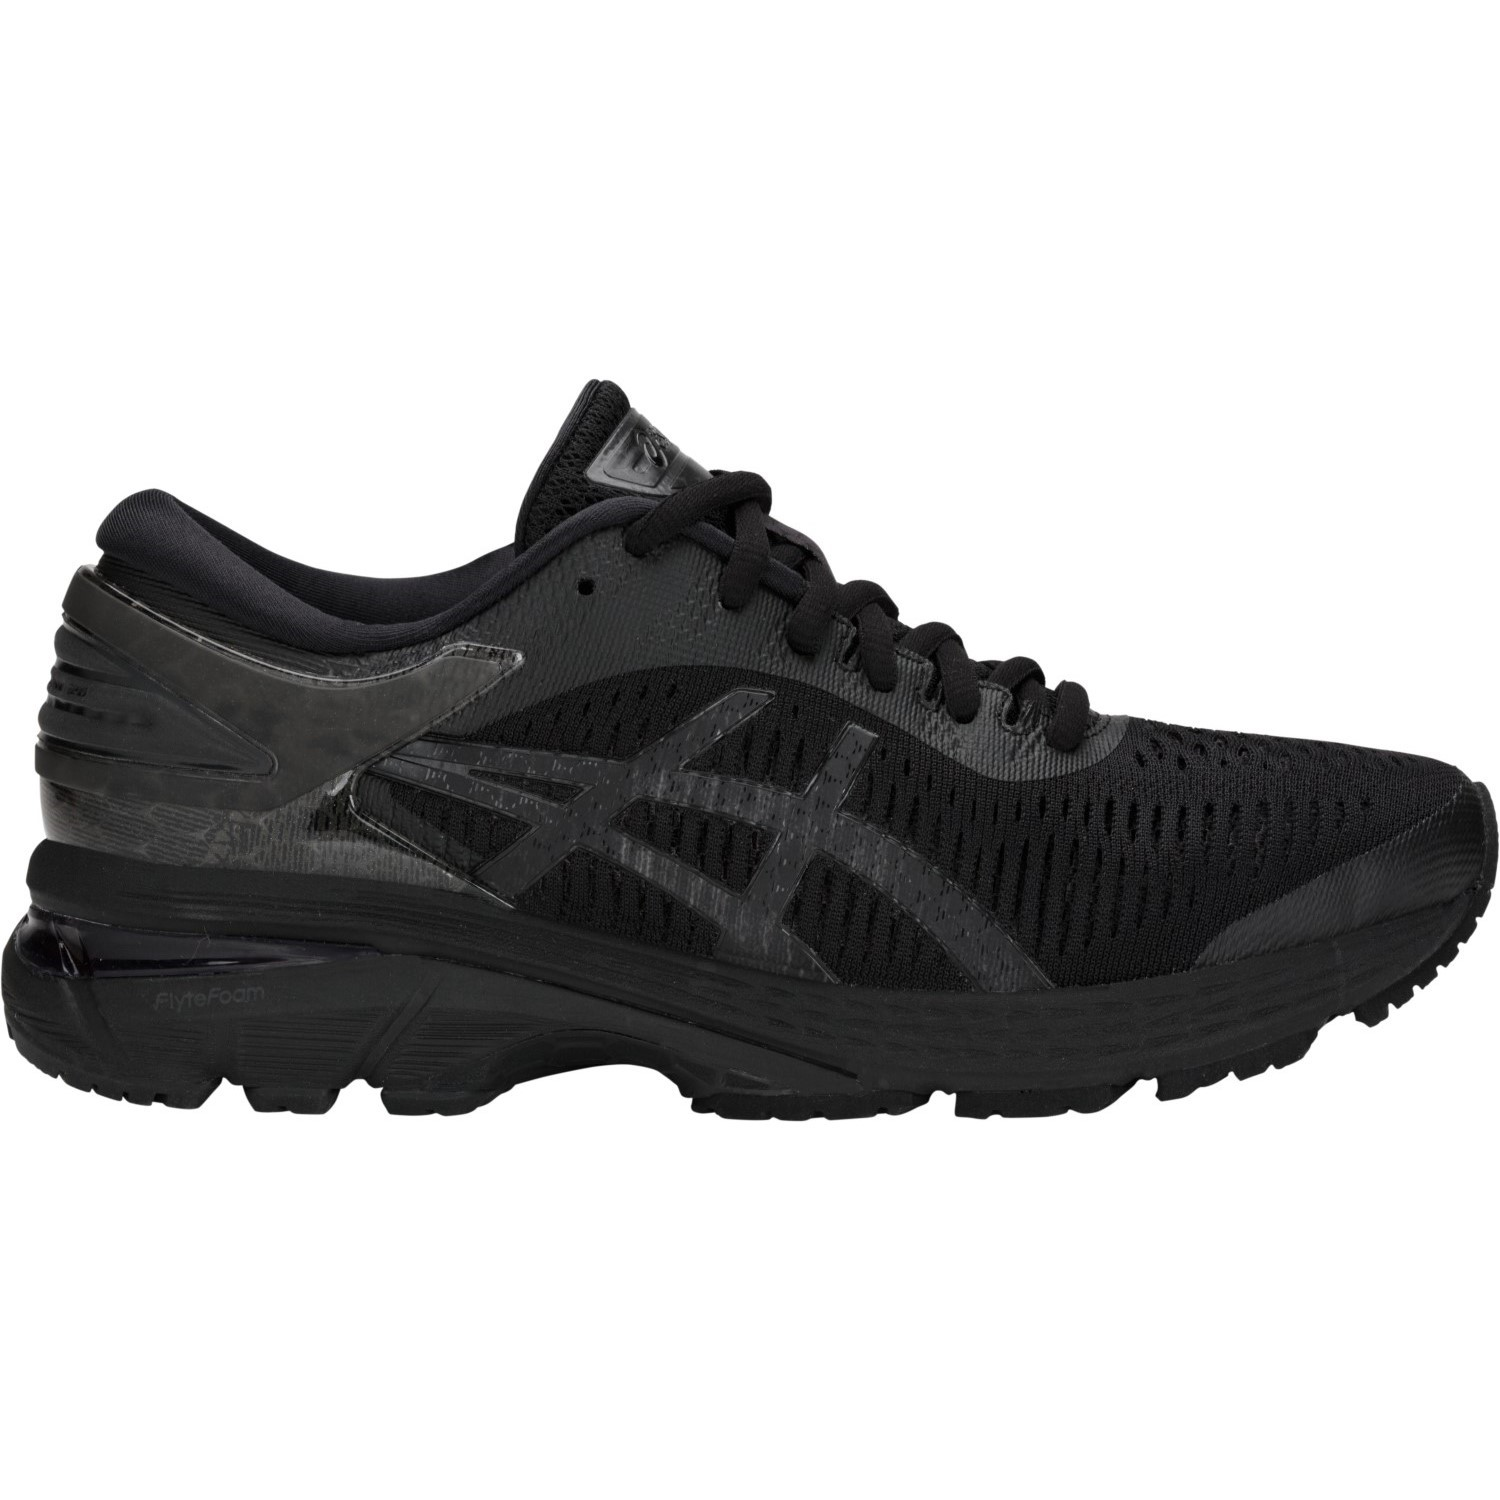 5477fba3a12d5 Asics Gel Kayano 25 - Womens Running Shoes - Triple Black